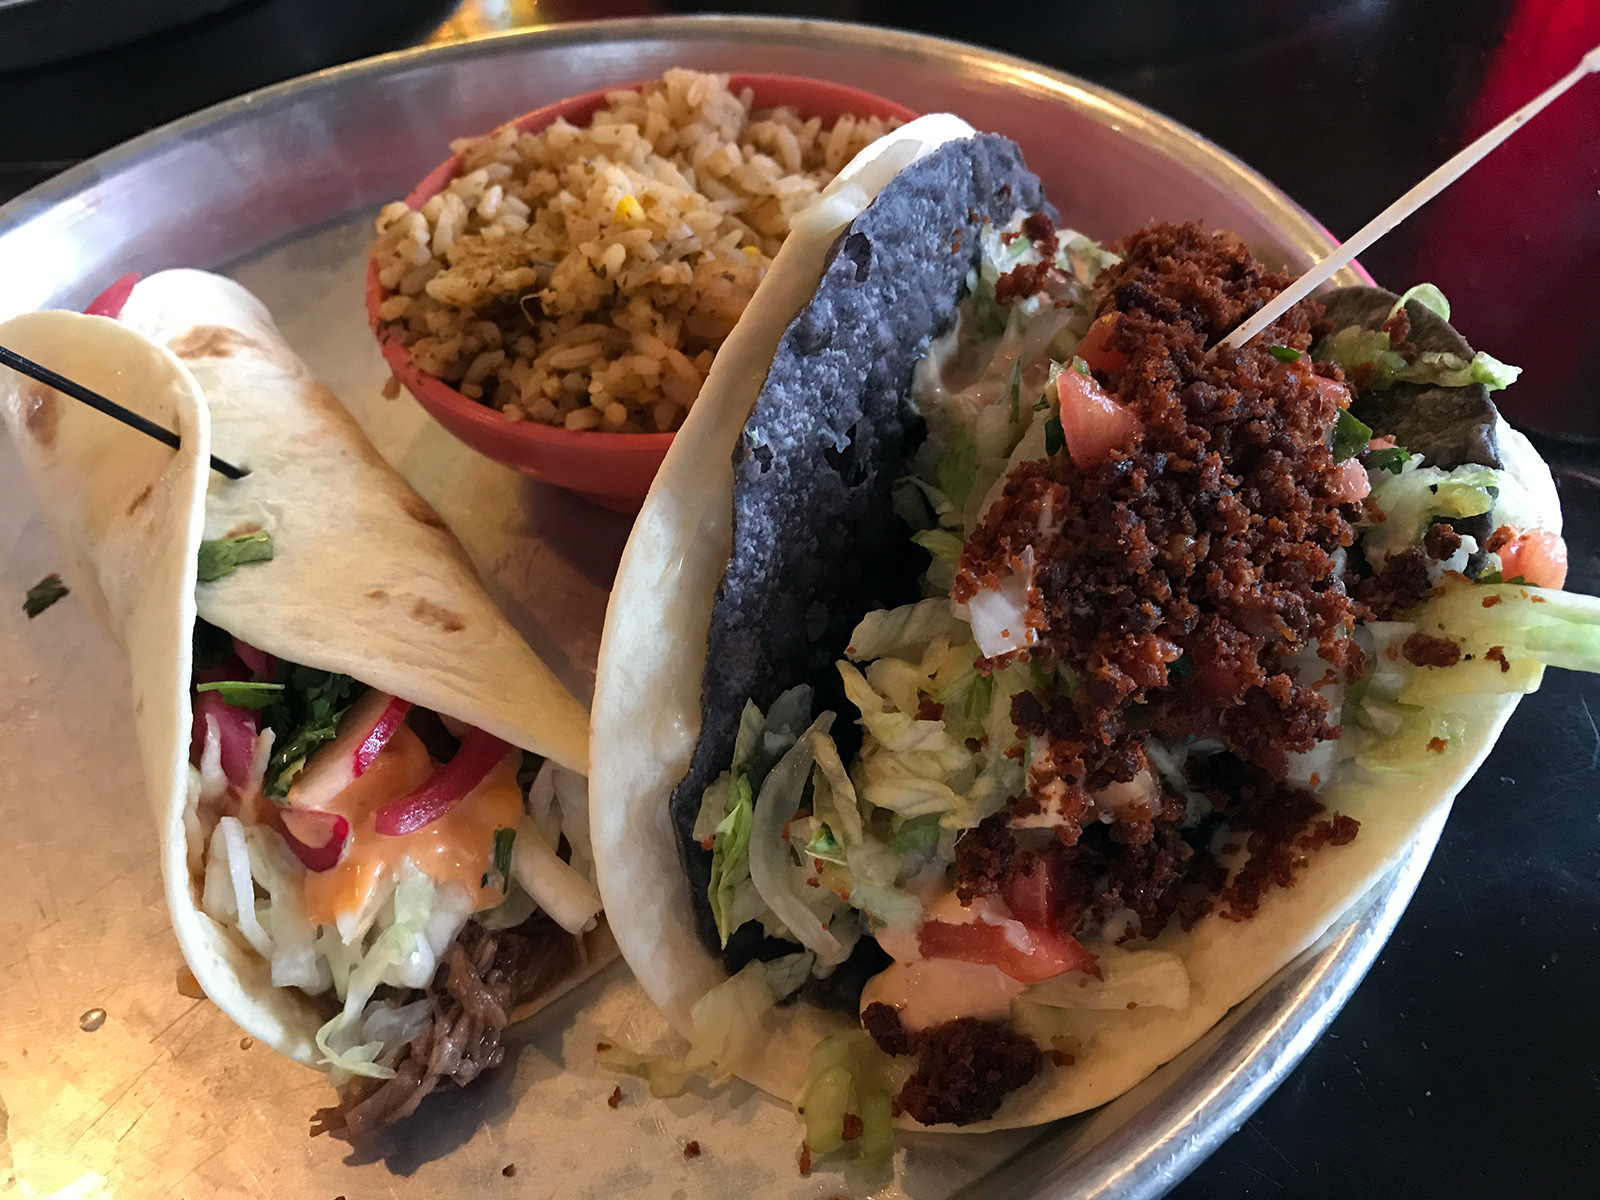 Taco Mamacita in Chattanooga, TN by Jets Like Taxis